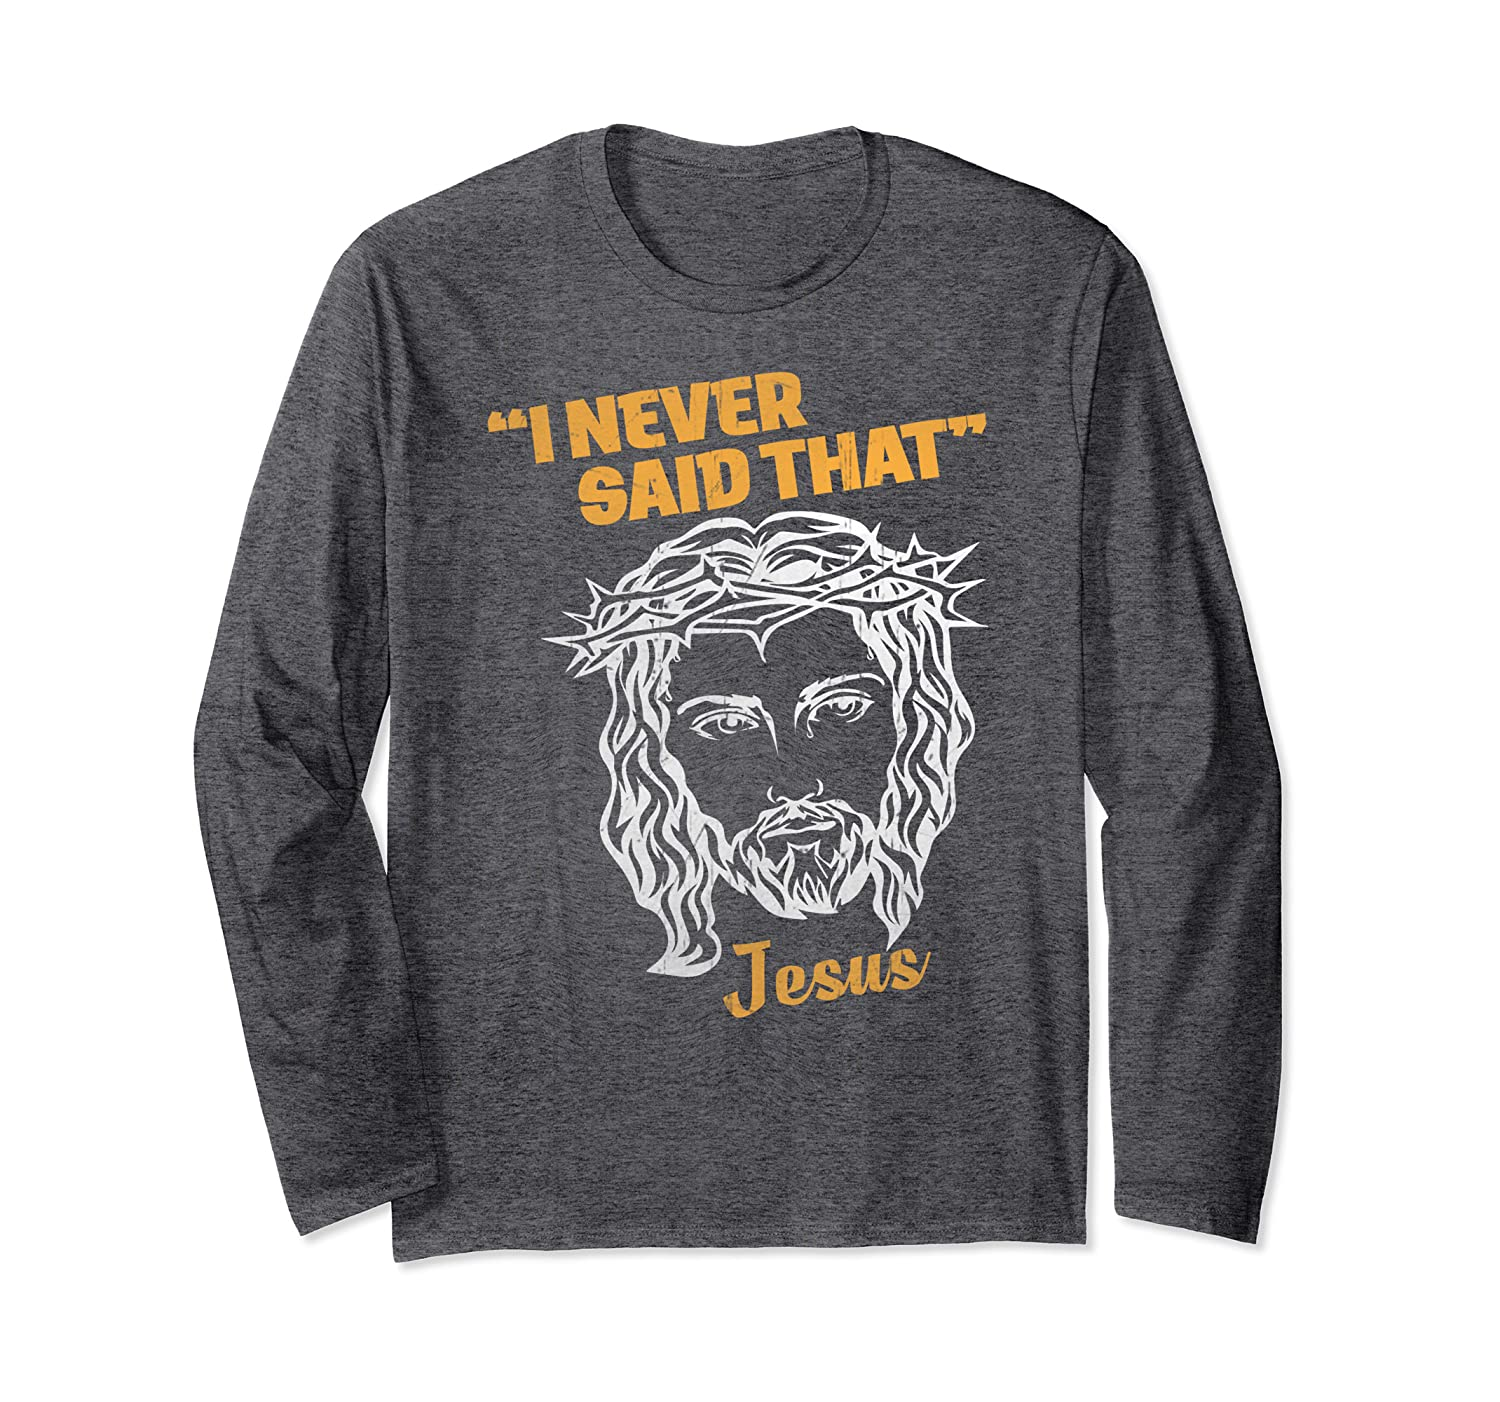 Funny Religious Christian Gift – I Never Said That Jesus Long Sleeve T-Shirt